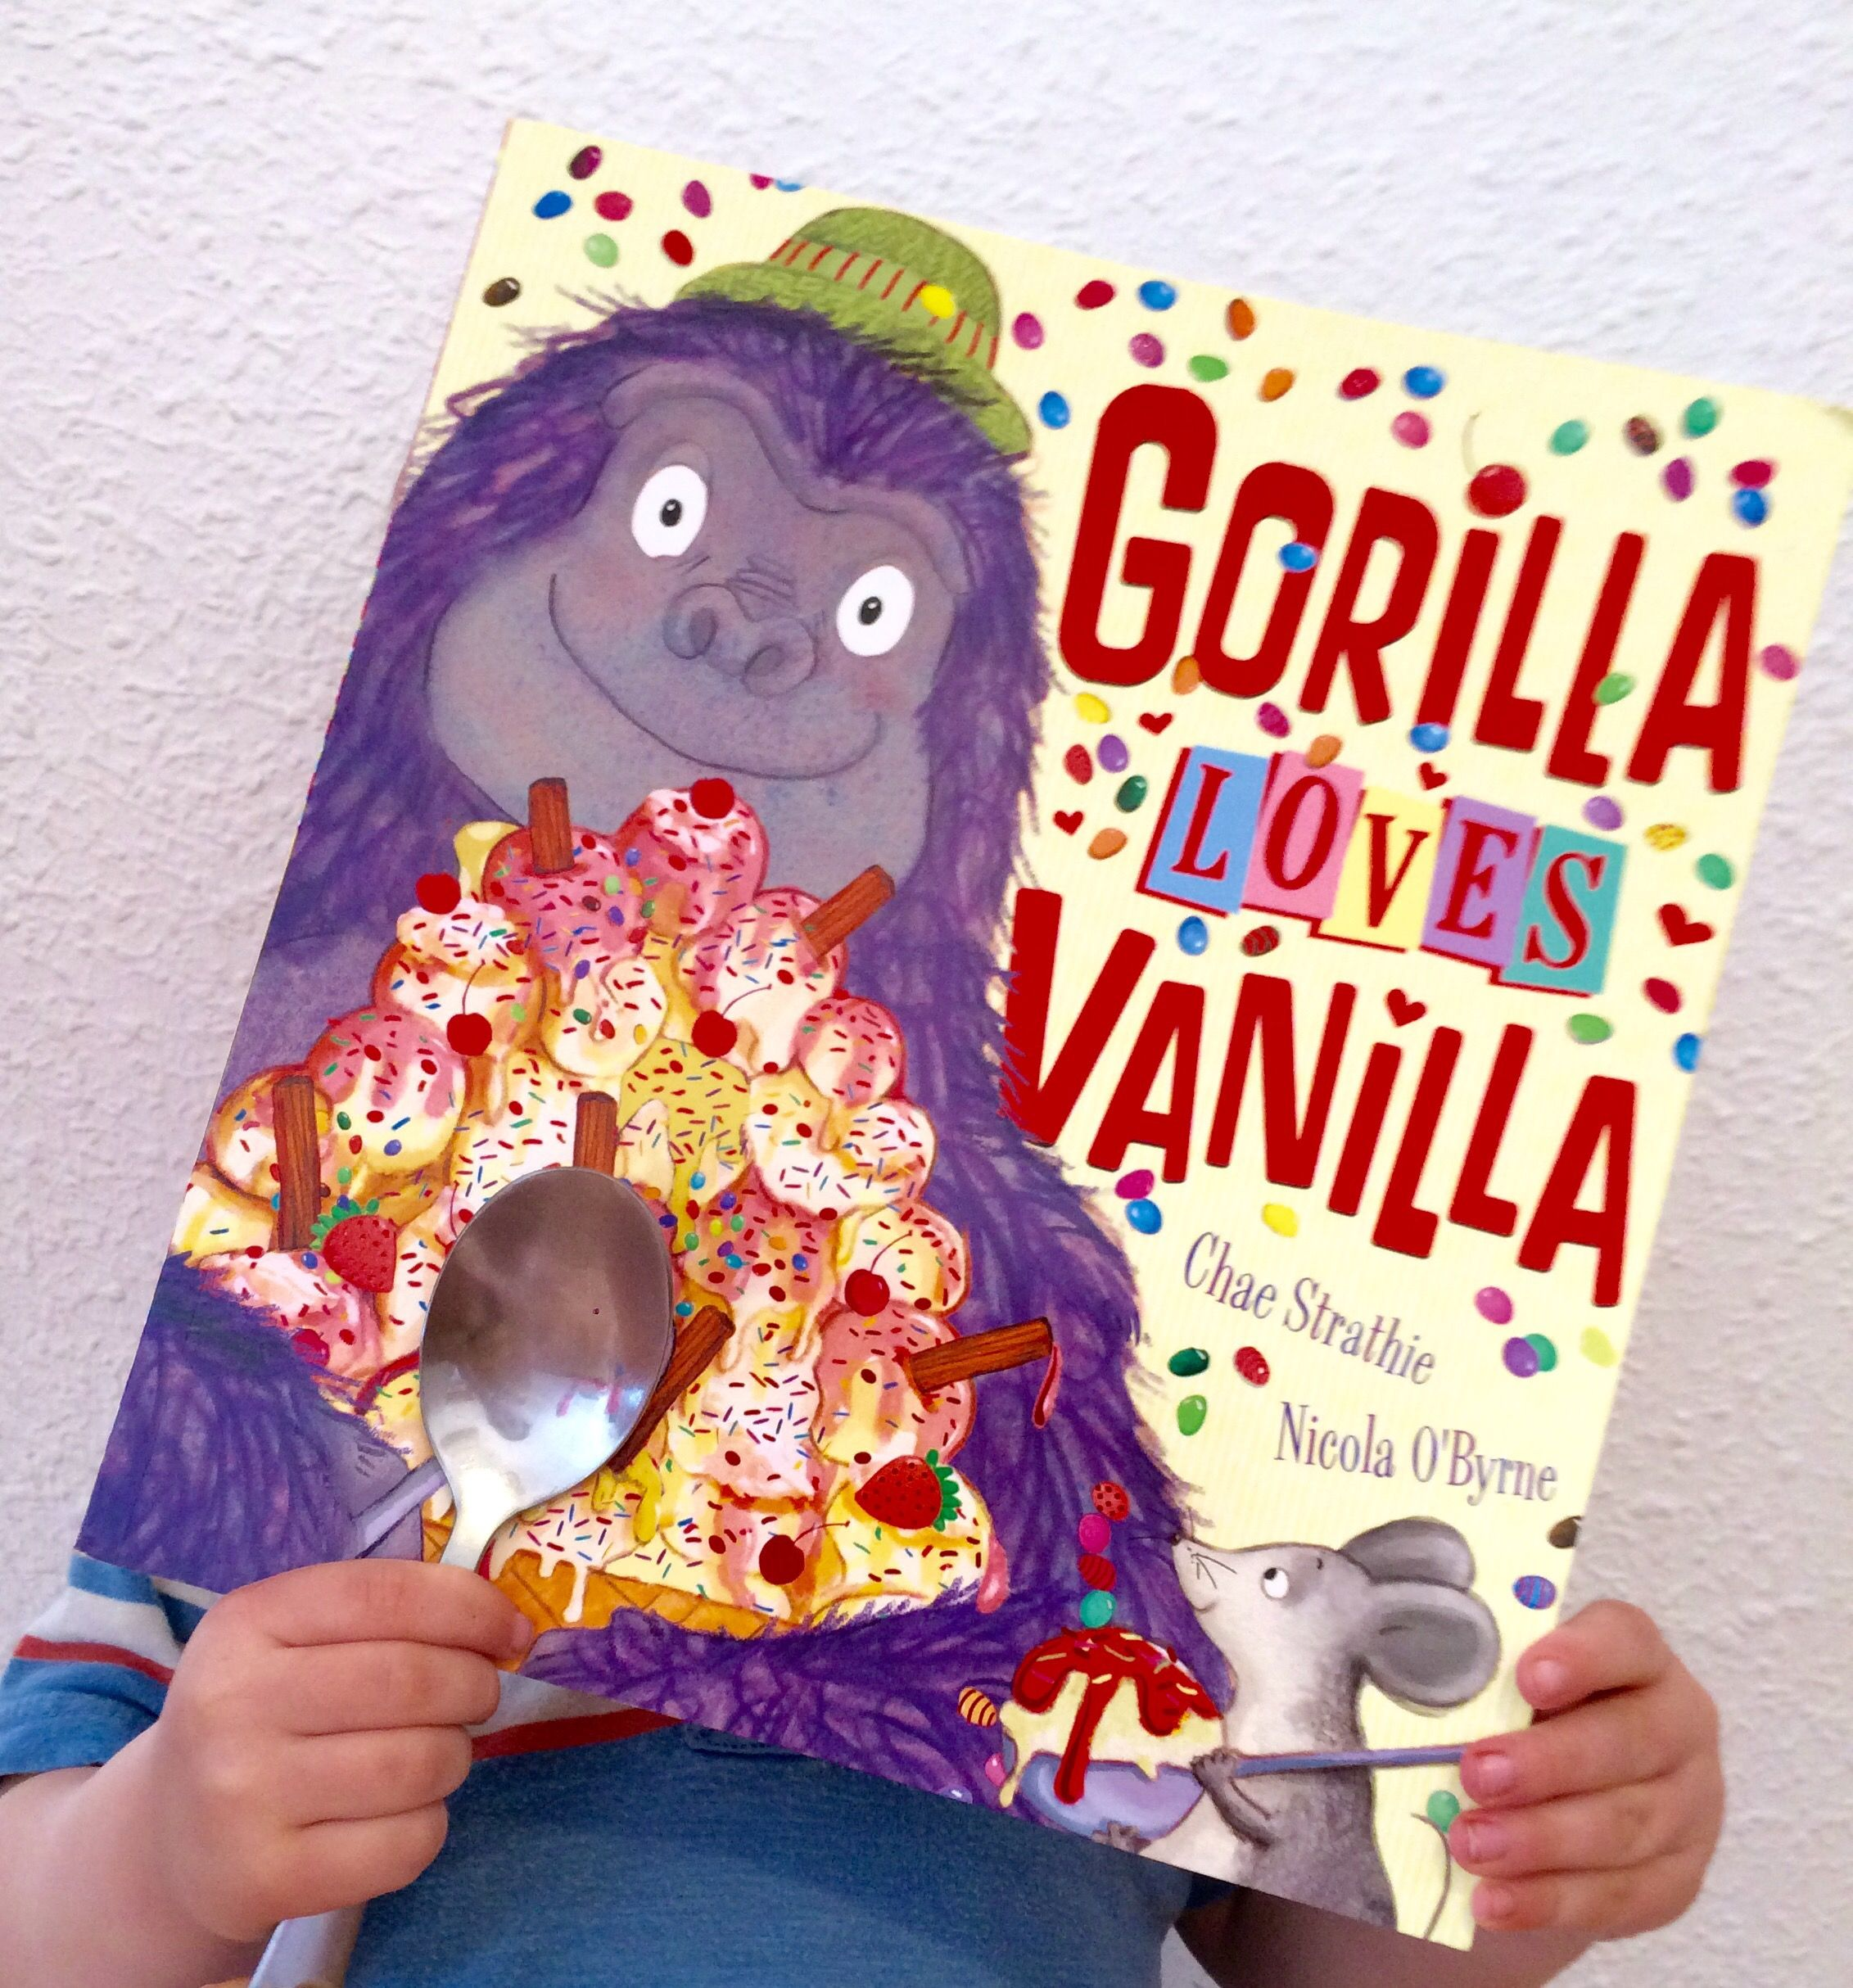 Gorilla loves vanilla explore classic recipe book suggestions and more forumfinder